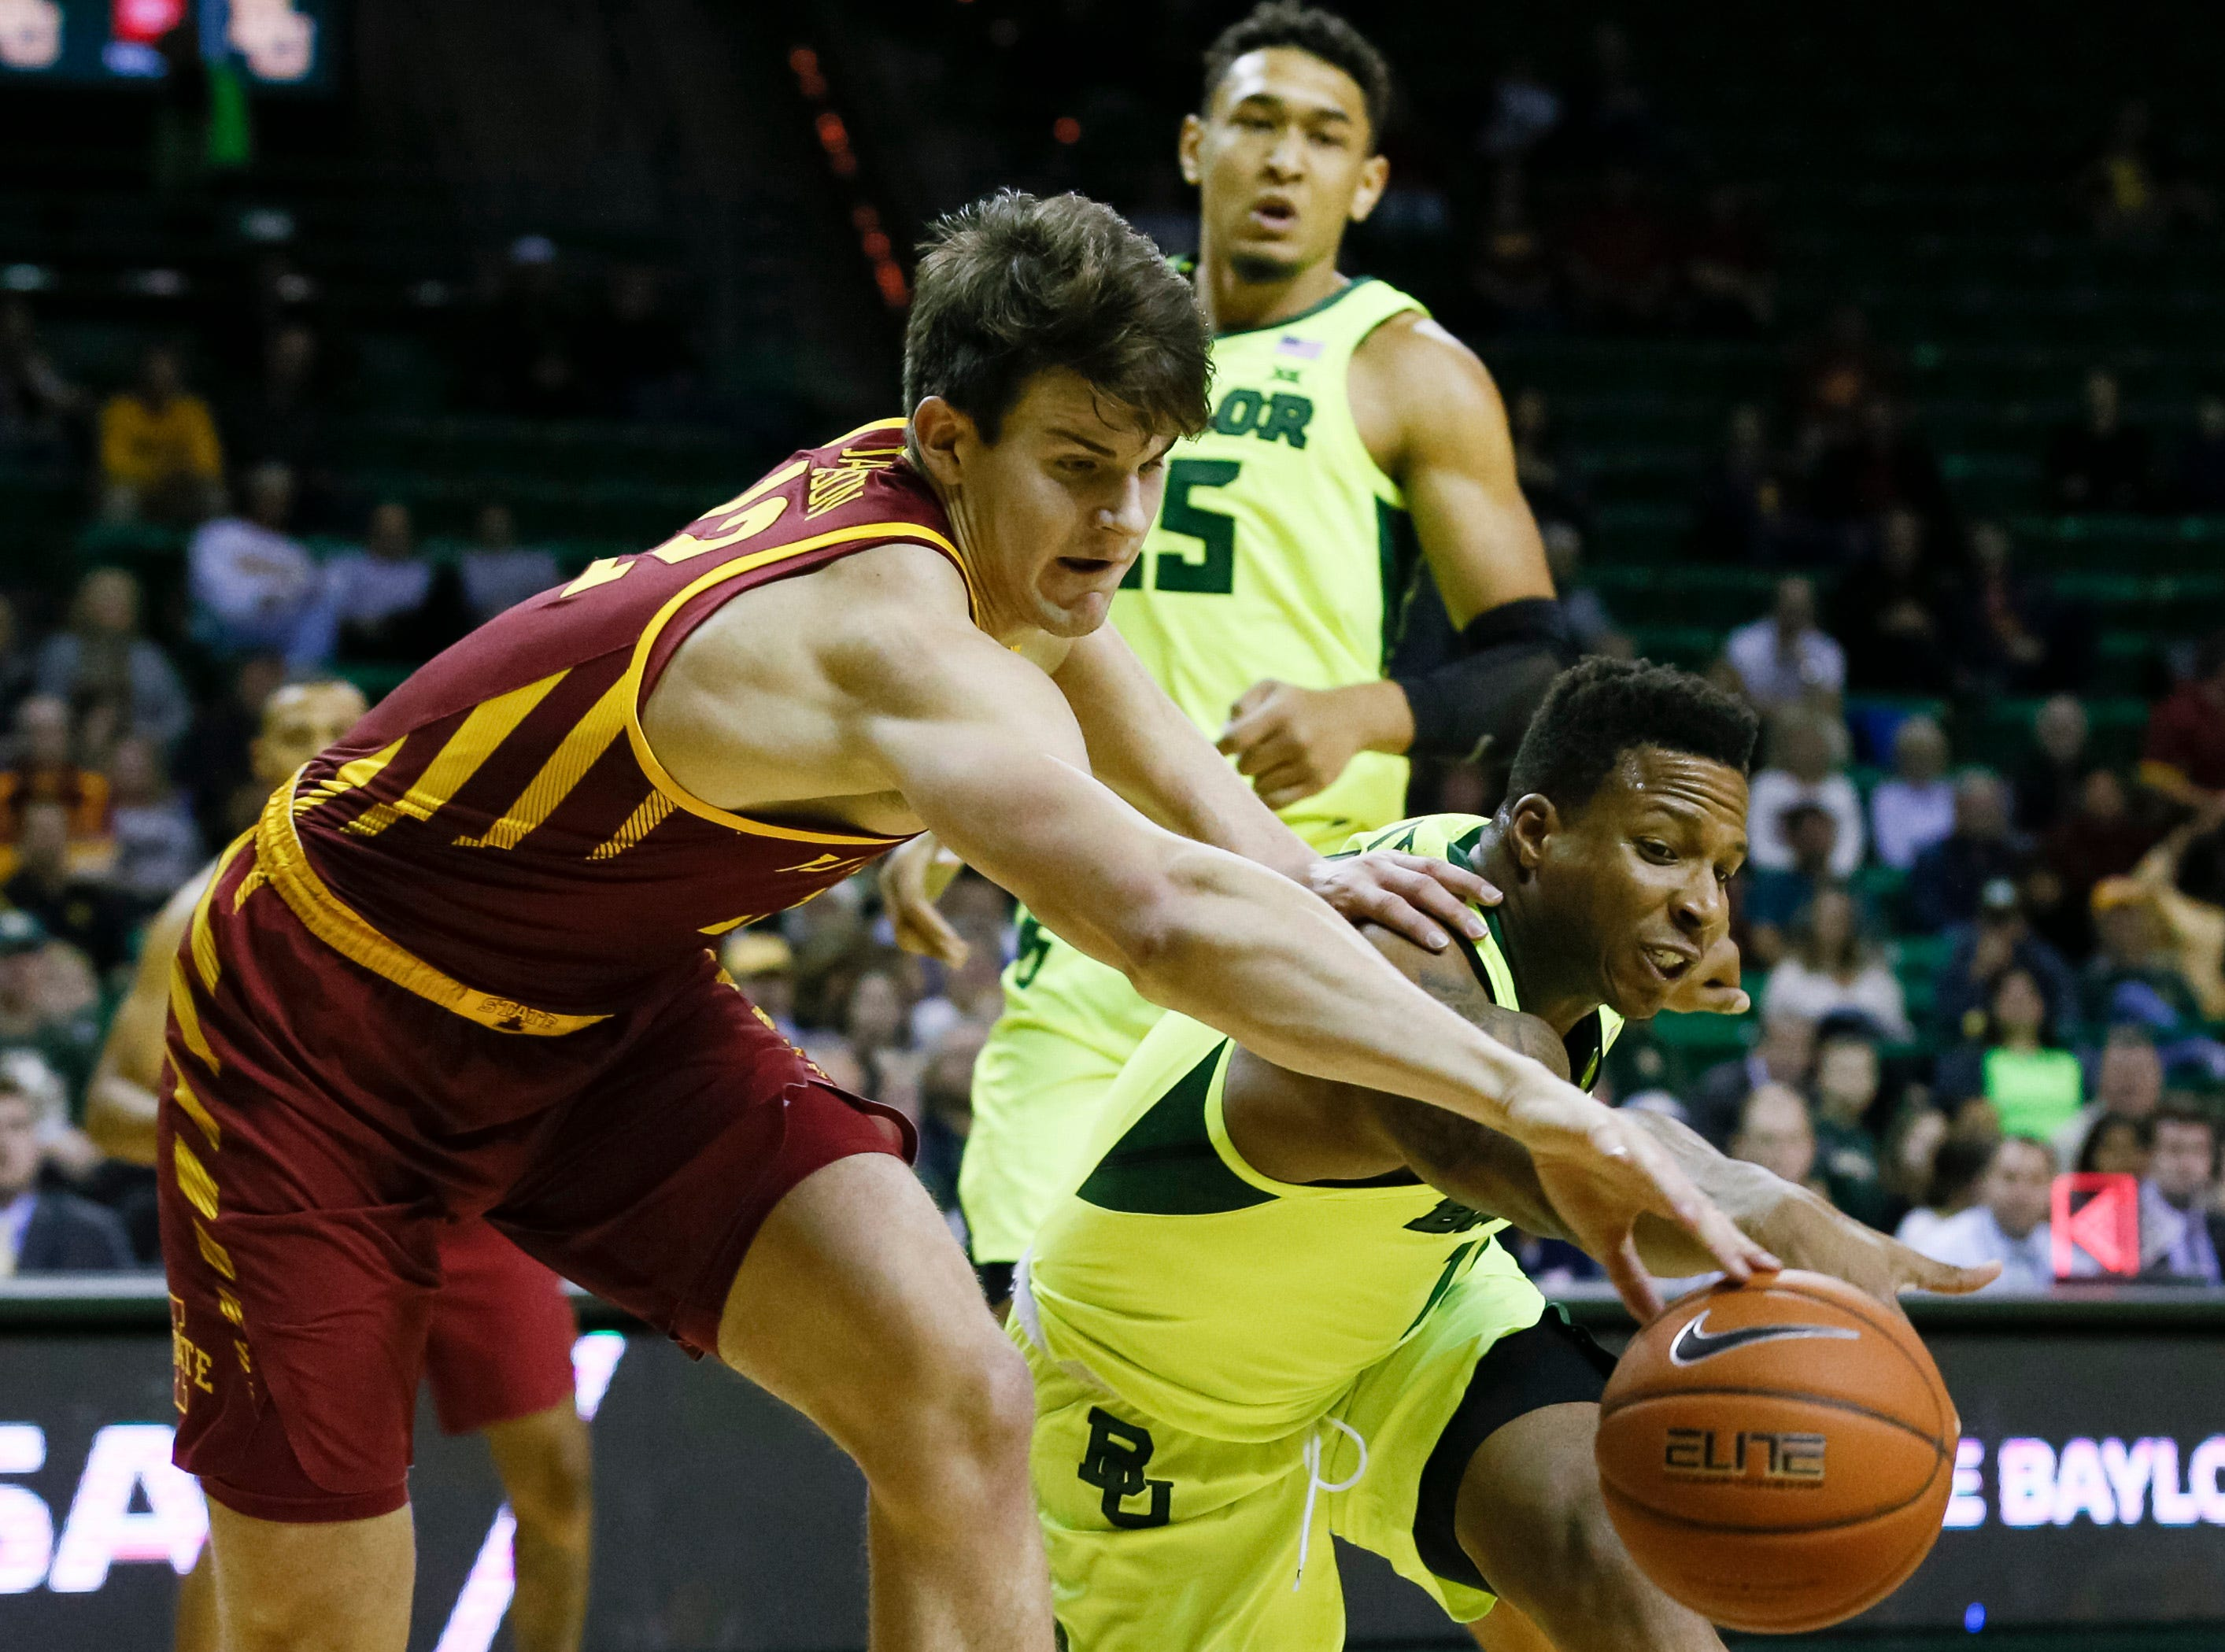 Iowa State Cyclones forward Michael Jacobson (left) and Baylor Bears guard Mark Vital (right) battle for a loose ball during the first half at Ferrell Center.